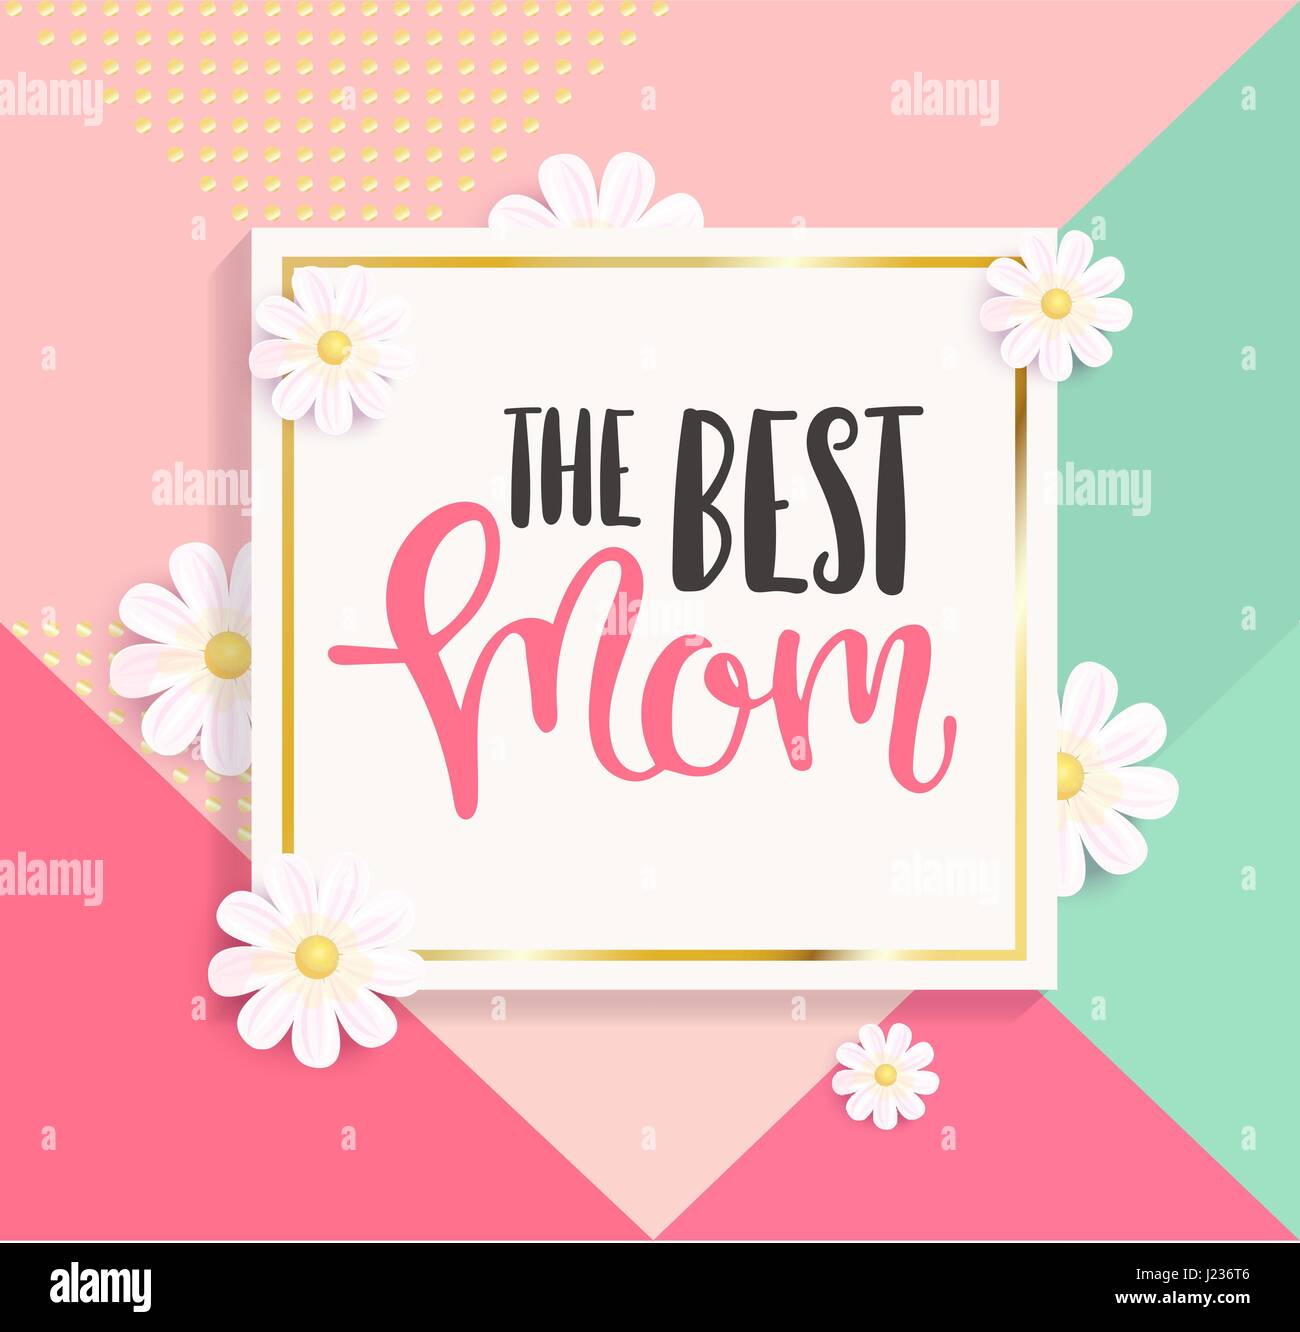 The best mom greeting card on colourful geometric background. Vector